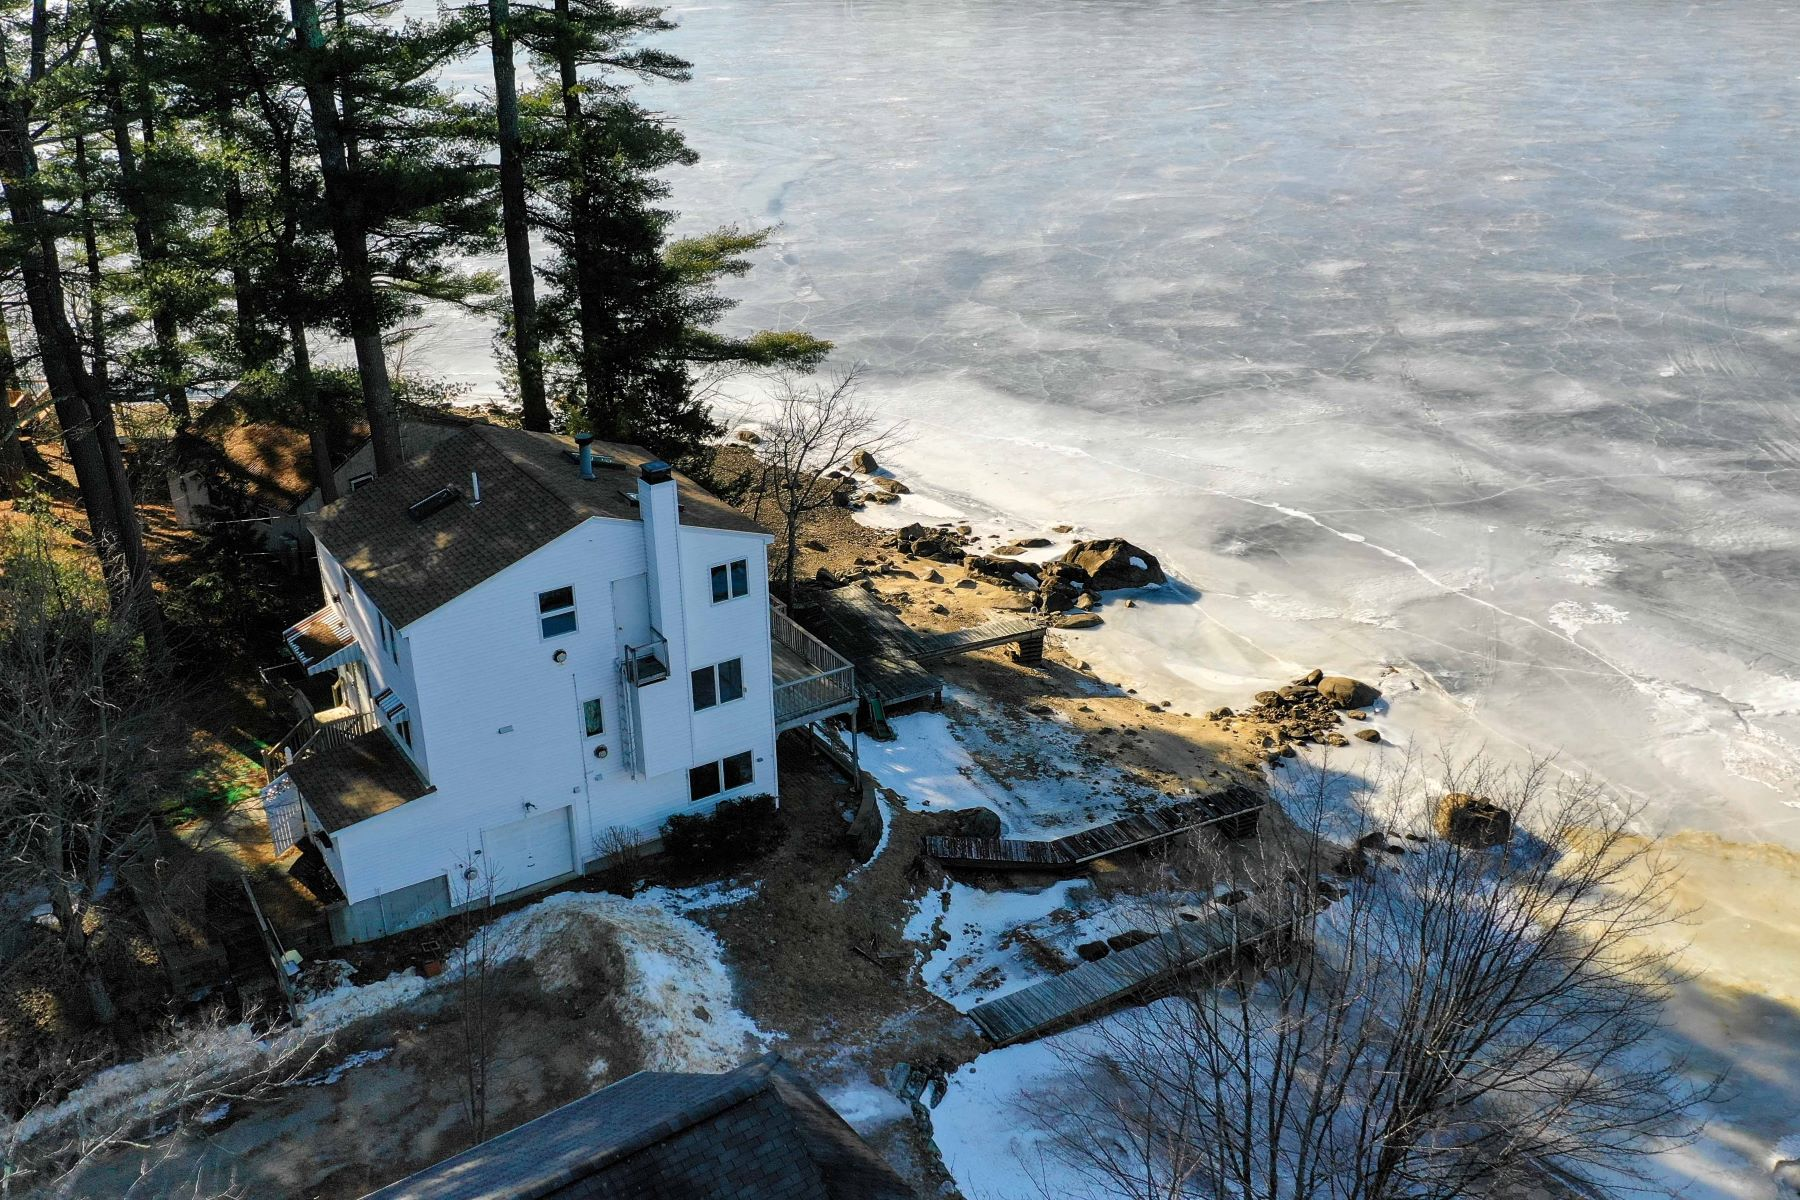 Single Family Home for Sale at Lakefront Living with Sunset Views 42 White Grove Road Nottingham, New Hampshire 03290 United States